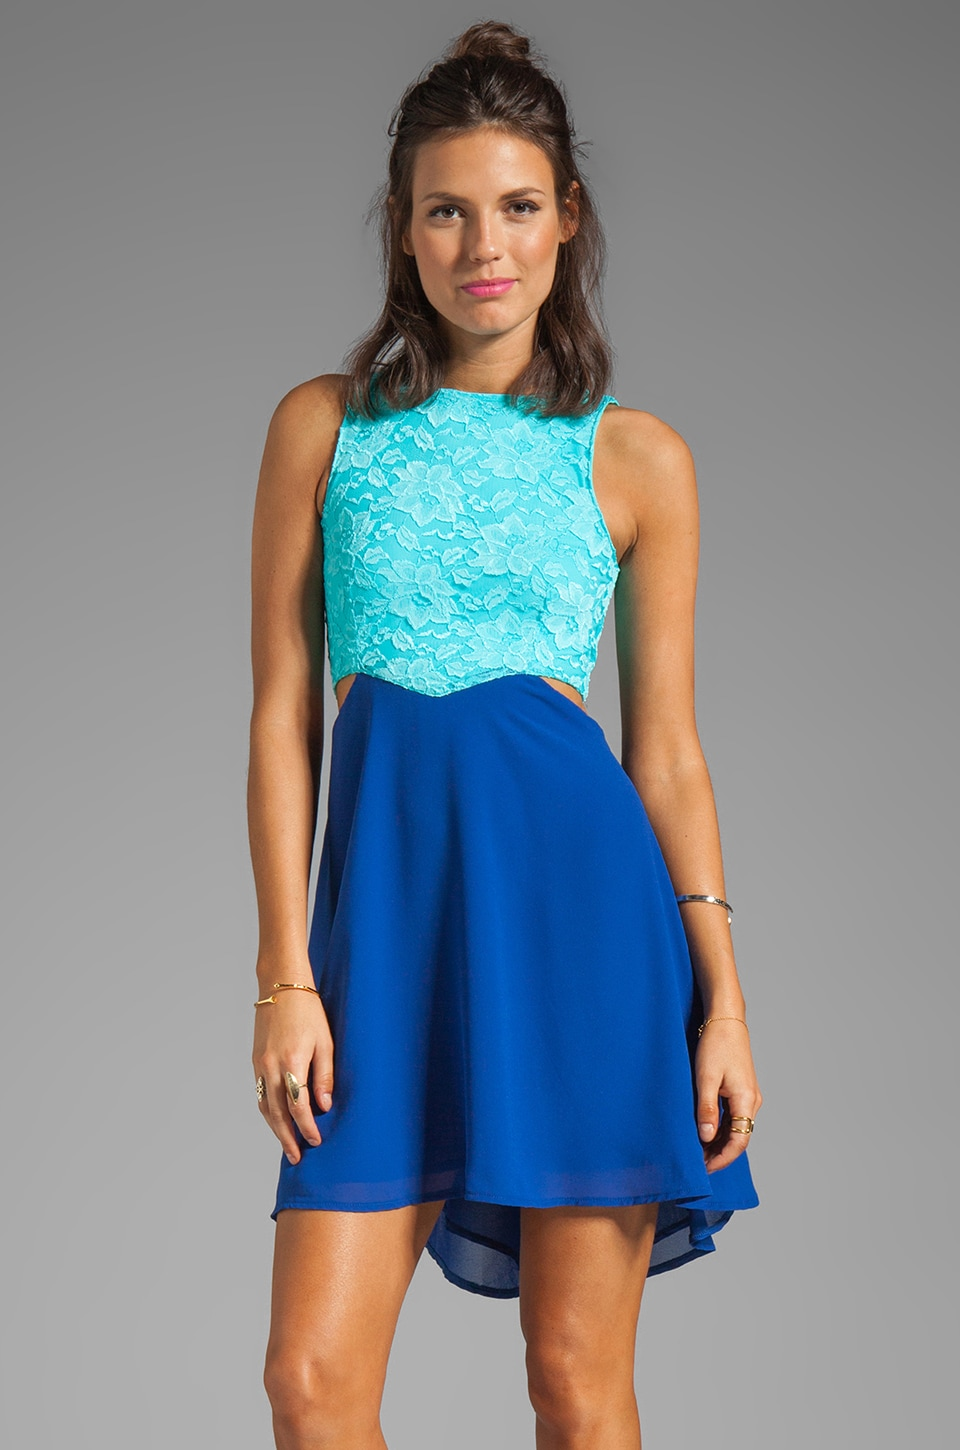 Donna Mizani Passion Lace Dress in Aqua/Royal